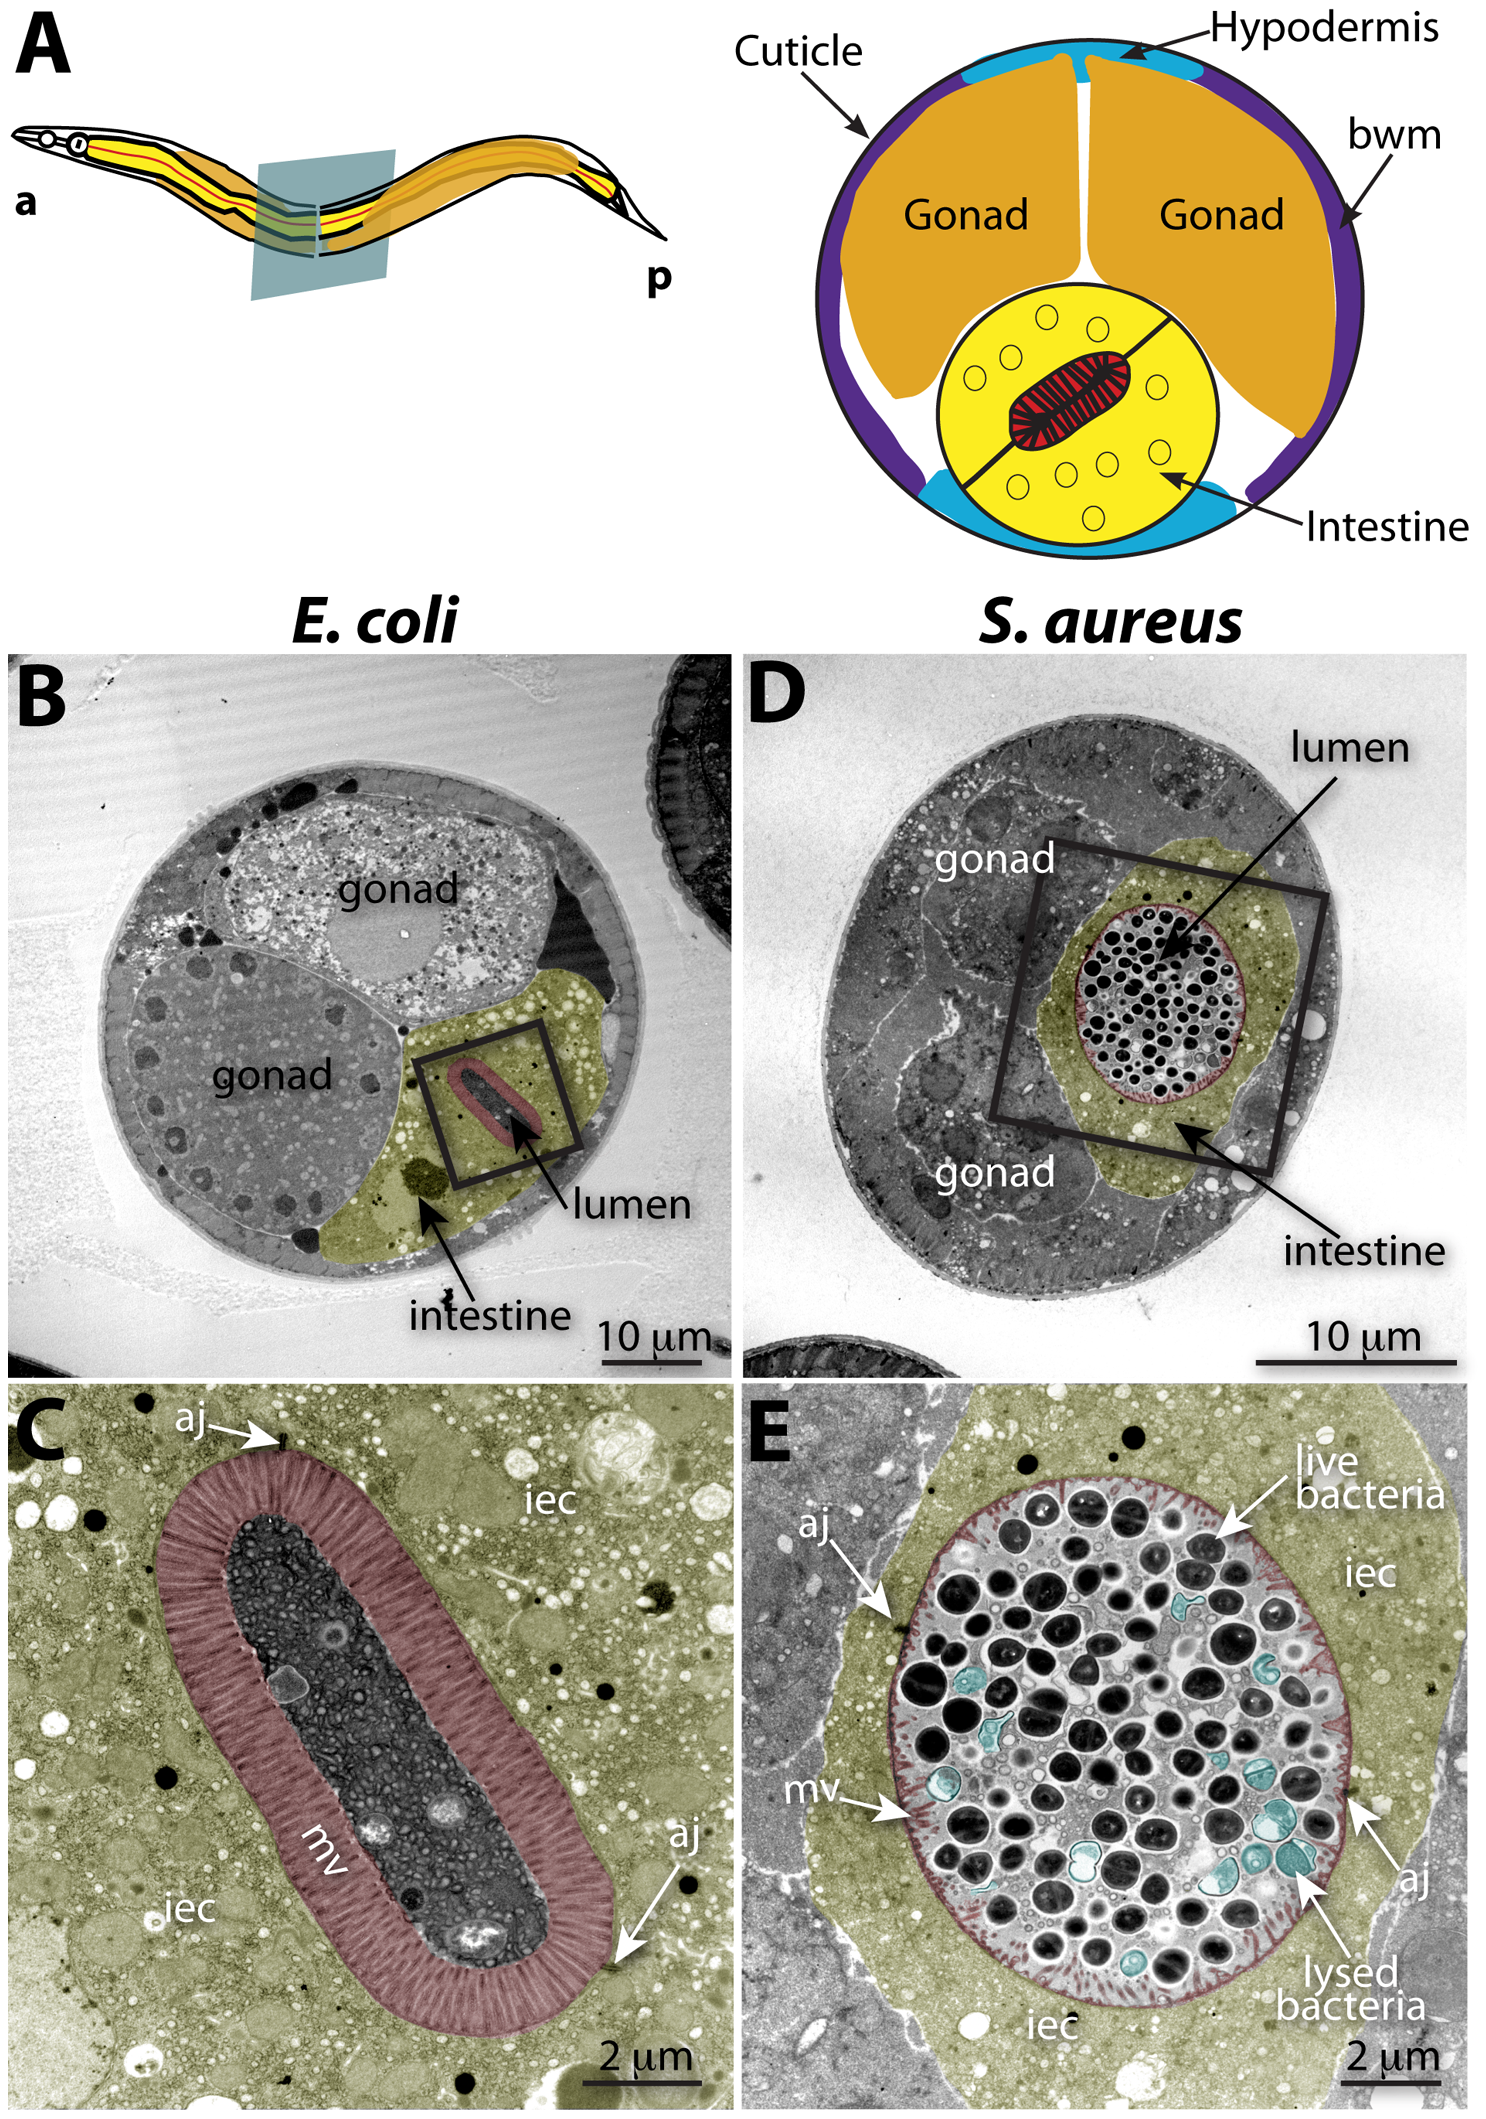 Intestinal distention, enterocyte effacement, and bacterial lysis at 12 h of <i>S. aureus</i> infection in <i>C. elegans</i>.